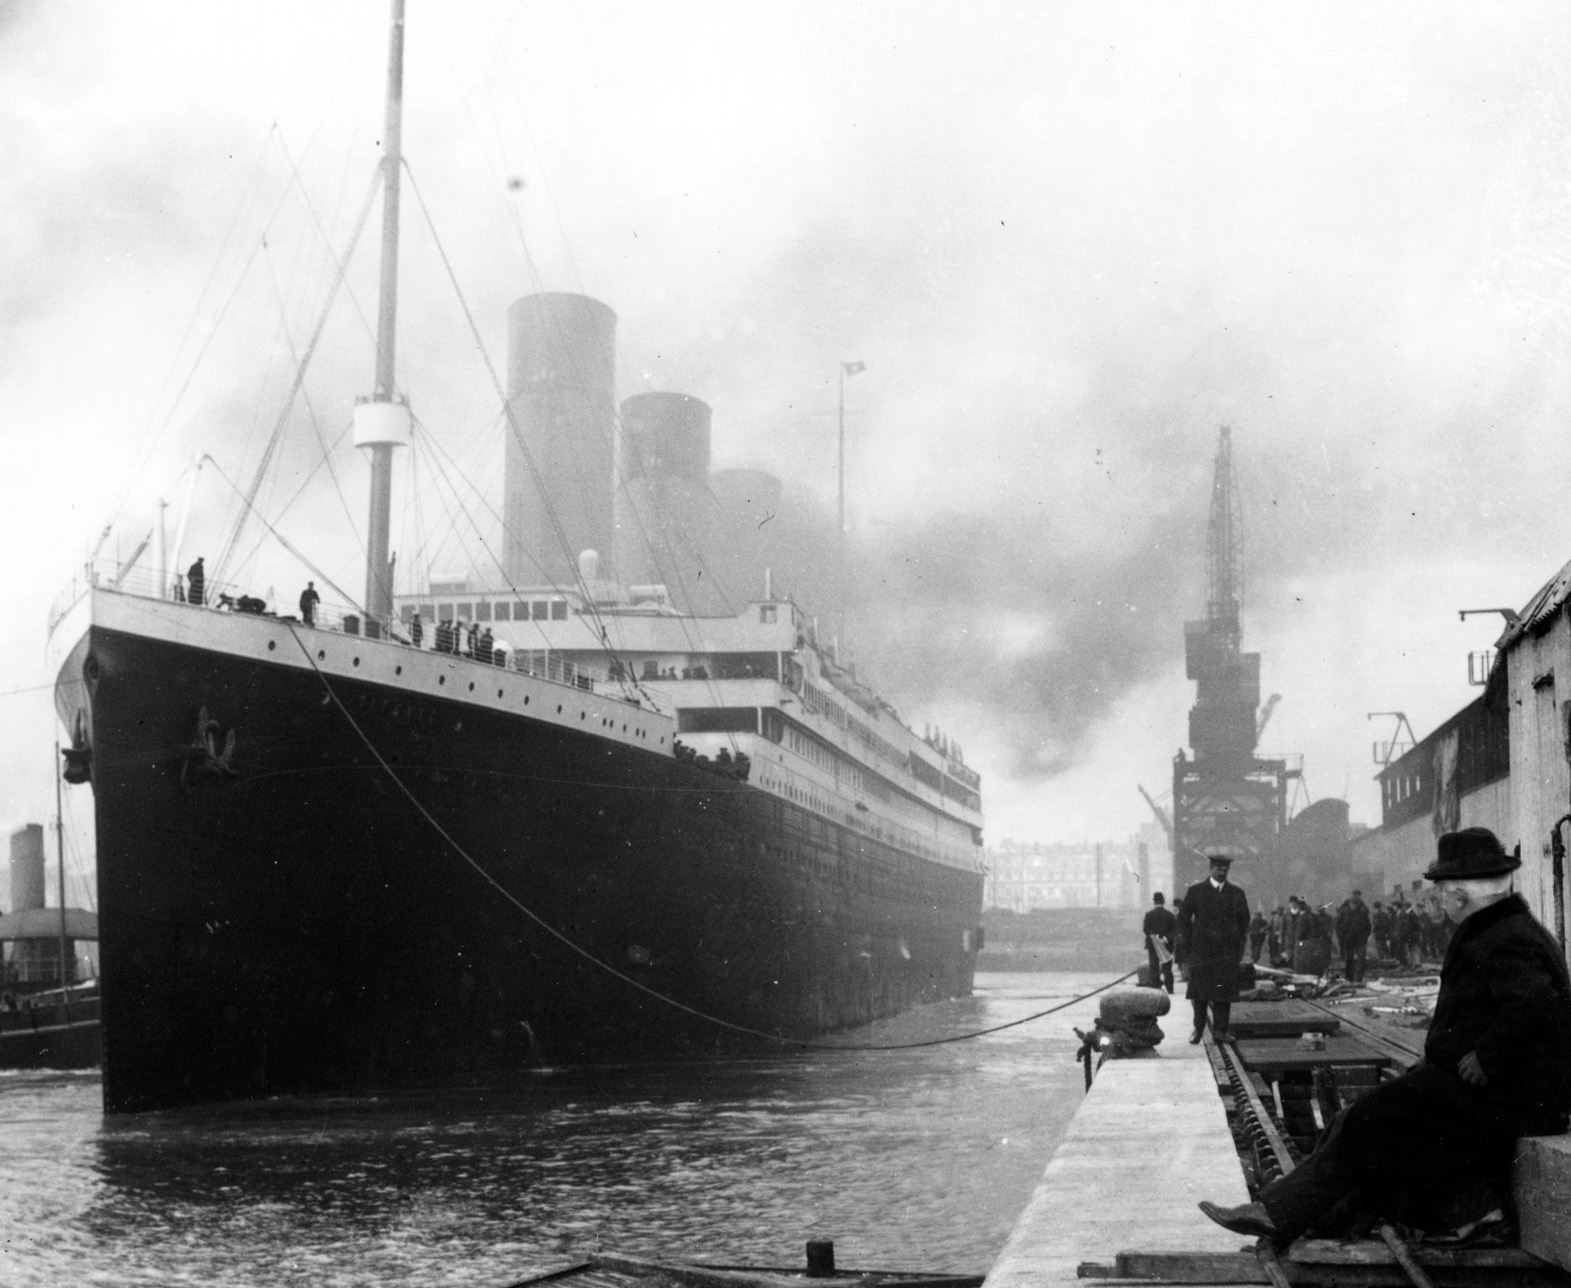 Travel Team Travel Secrets: Titanic II to be Built